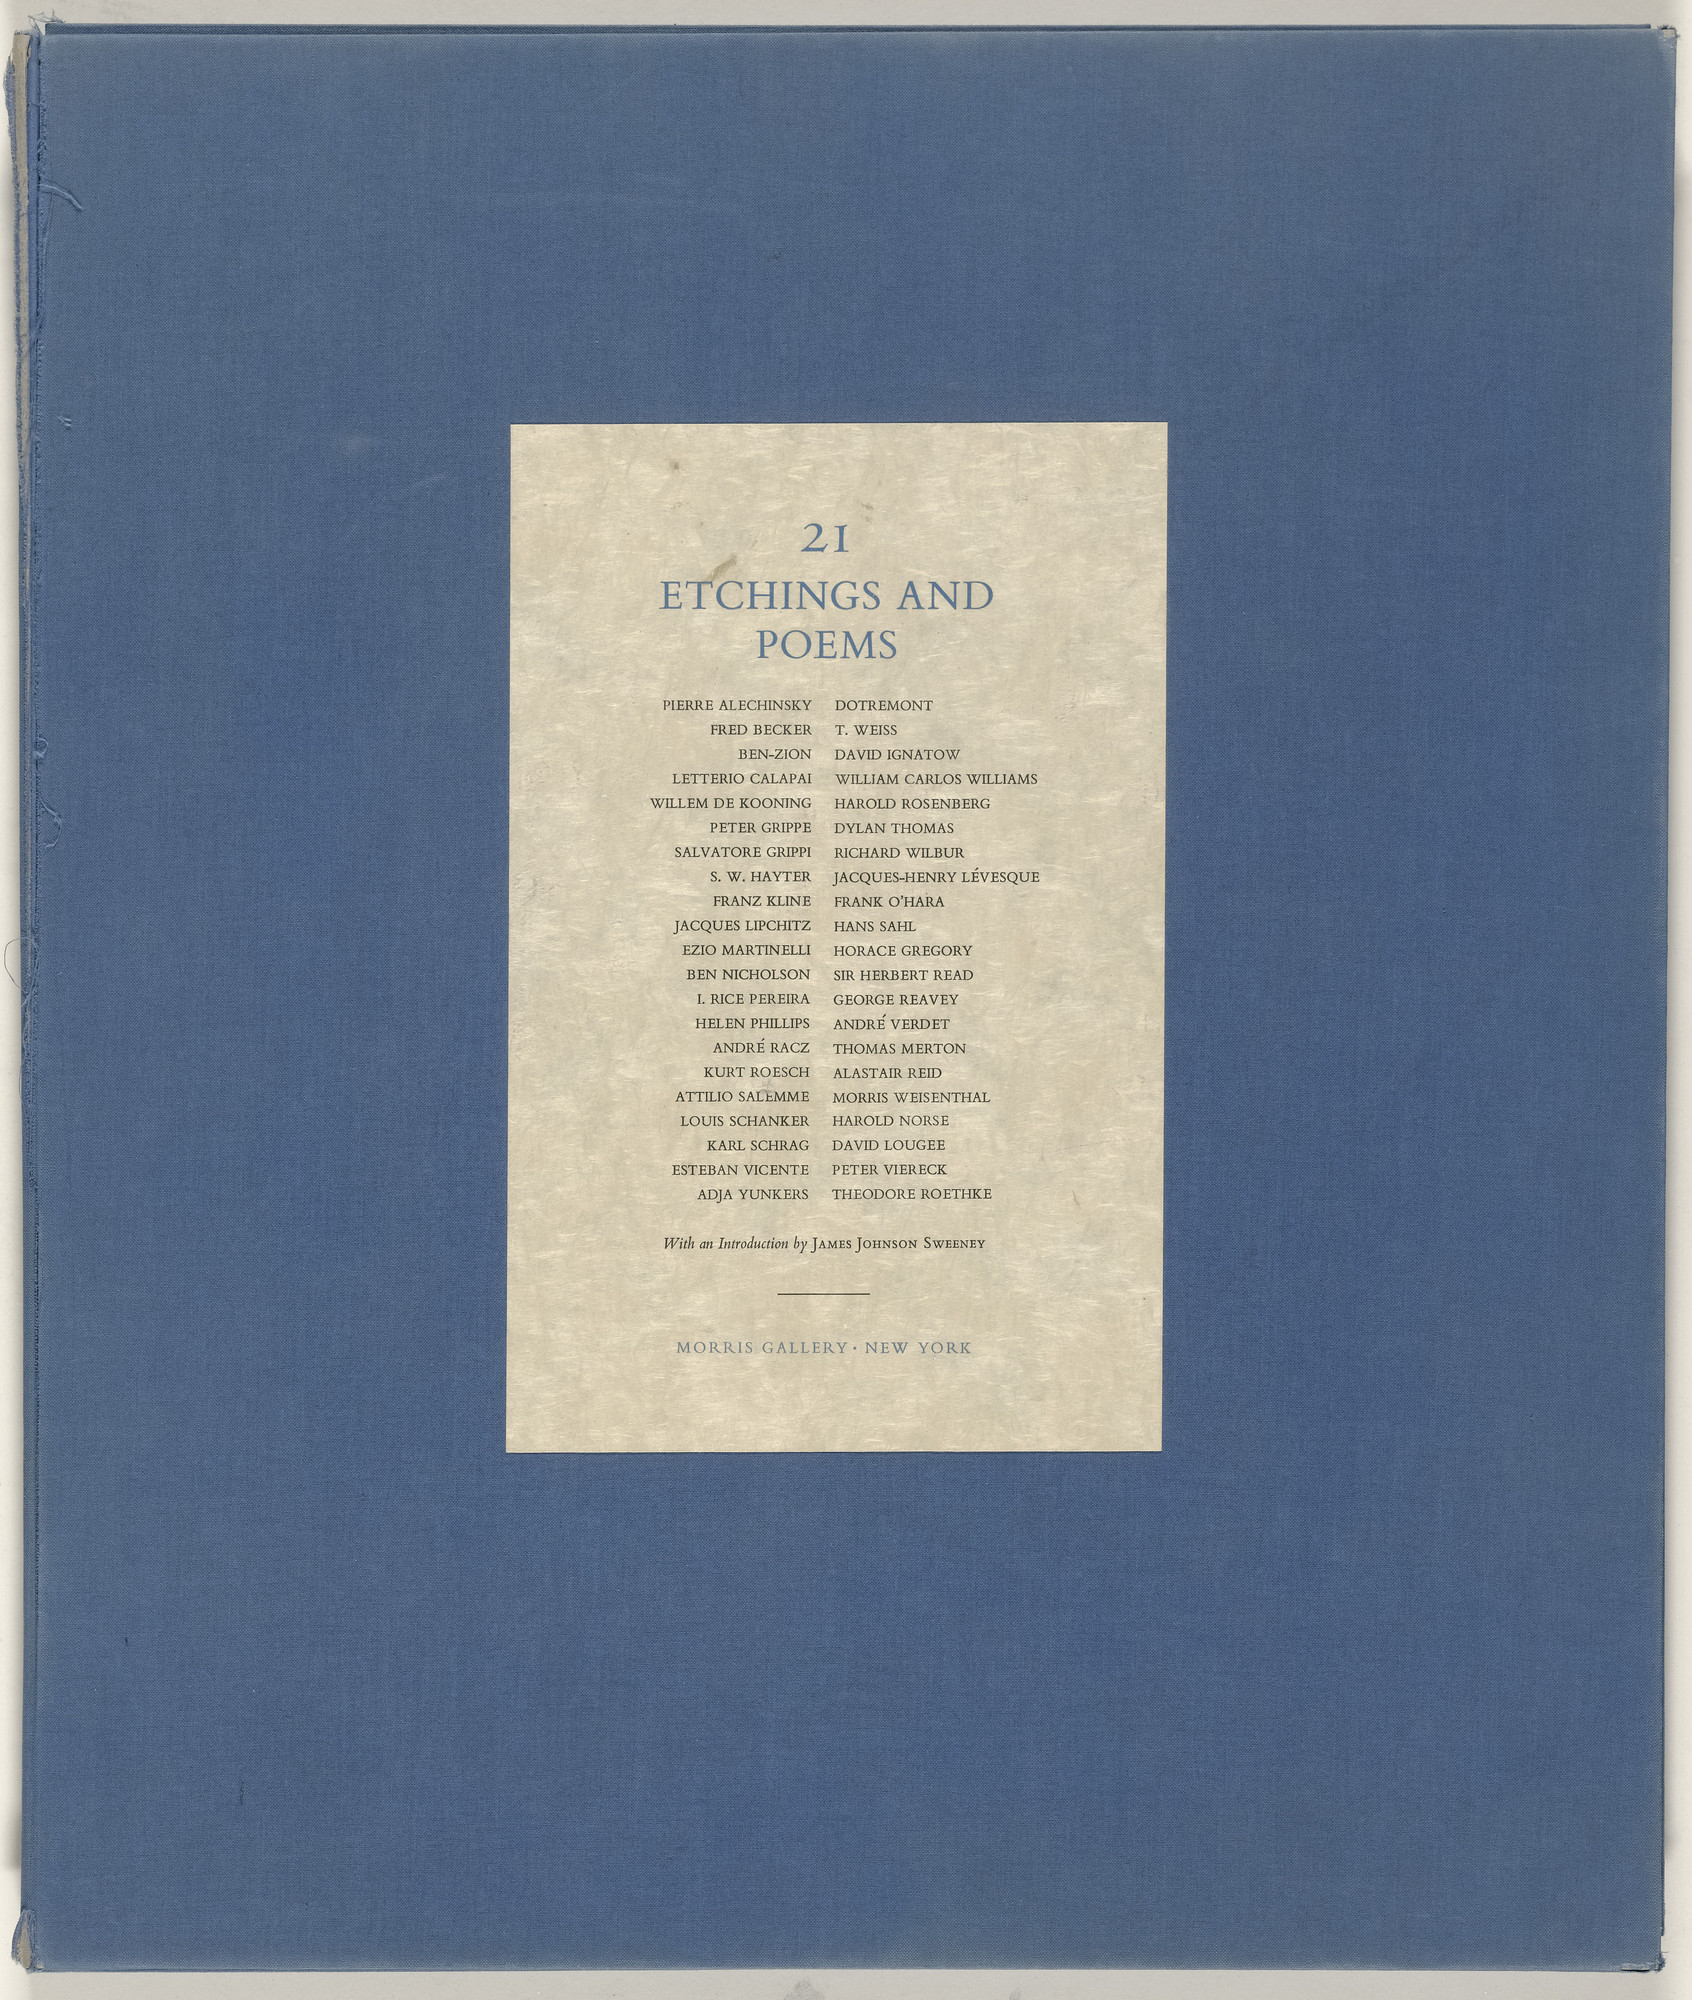 Various Artists, Pierre Alechinsky, Fred Becker, Letterio Calapai, Willem de Kooning, Peter Grippe, Salvatore Grippi, Stanley William Hayter, Franz Kline, Jacques Lipchitz, Ezio Martinelli, Ben Nicholson, Irene Rice Pereira, Helen Phillips, André Racz, Kurt Roesch, Attilio Salemme, Louis Schanker, Karl Schrag, Esteban Vicente, Adja Yunkers. 21 Etchings and Poems. 1951–60, published 1960